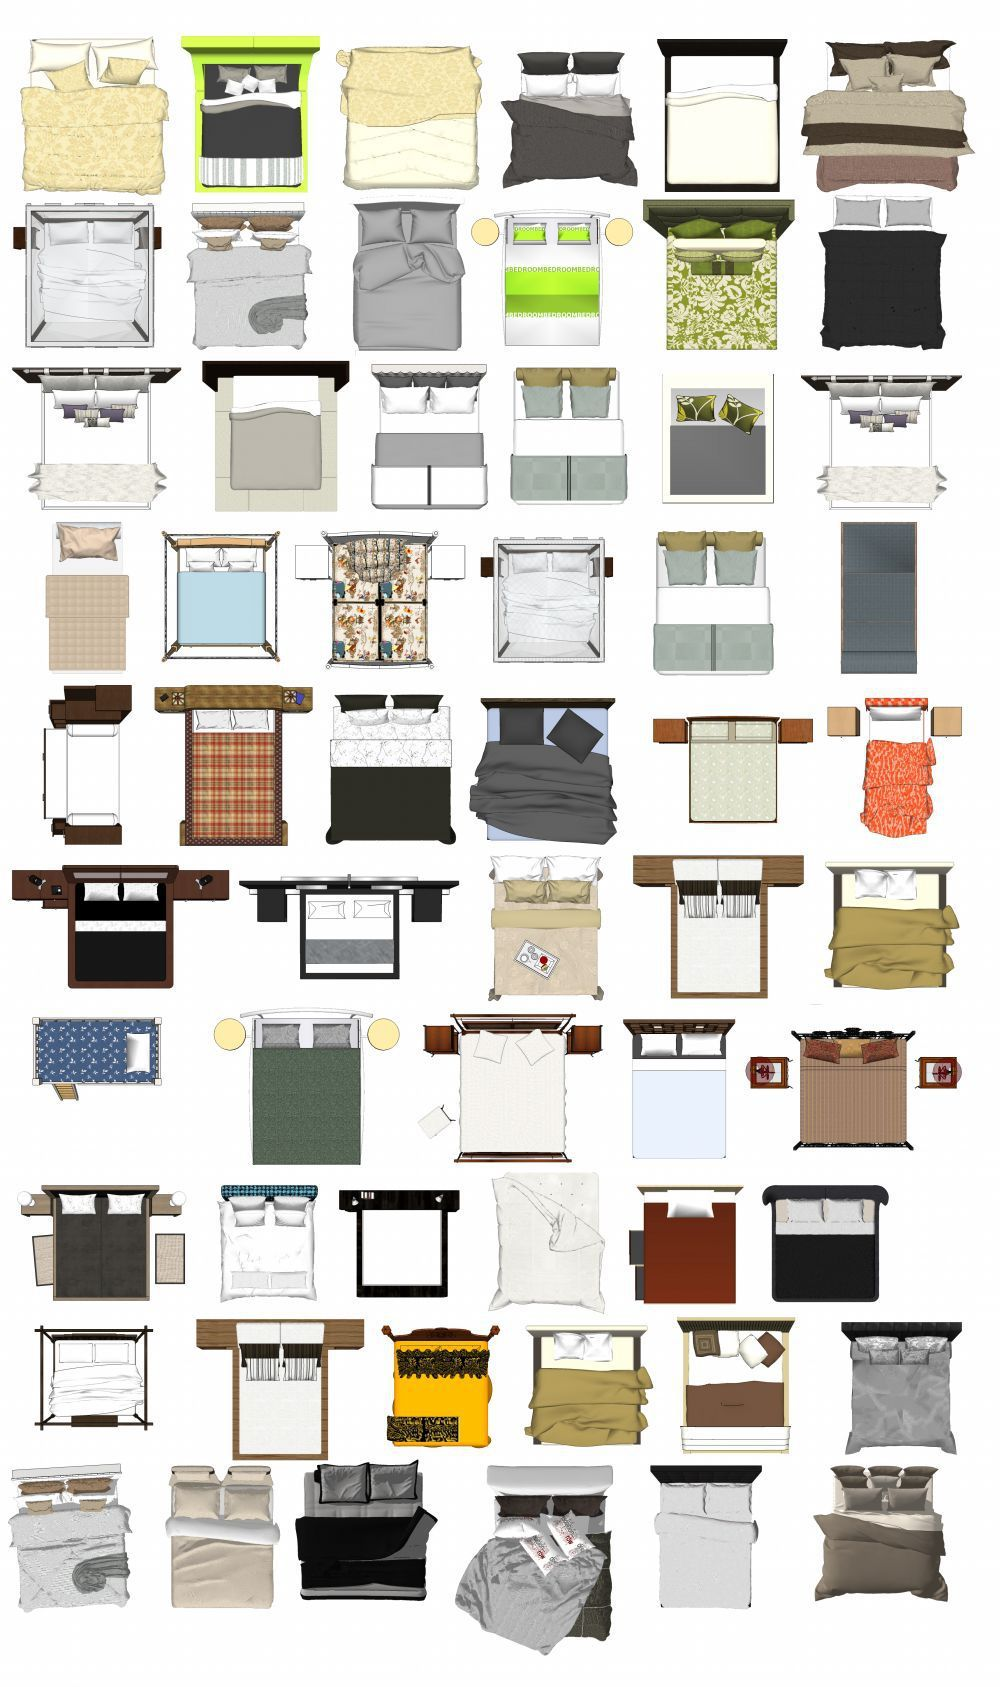 Free photoshop psd bed blocks 1 free cad blocks for Easy architectural software